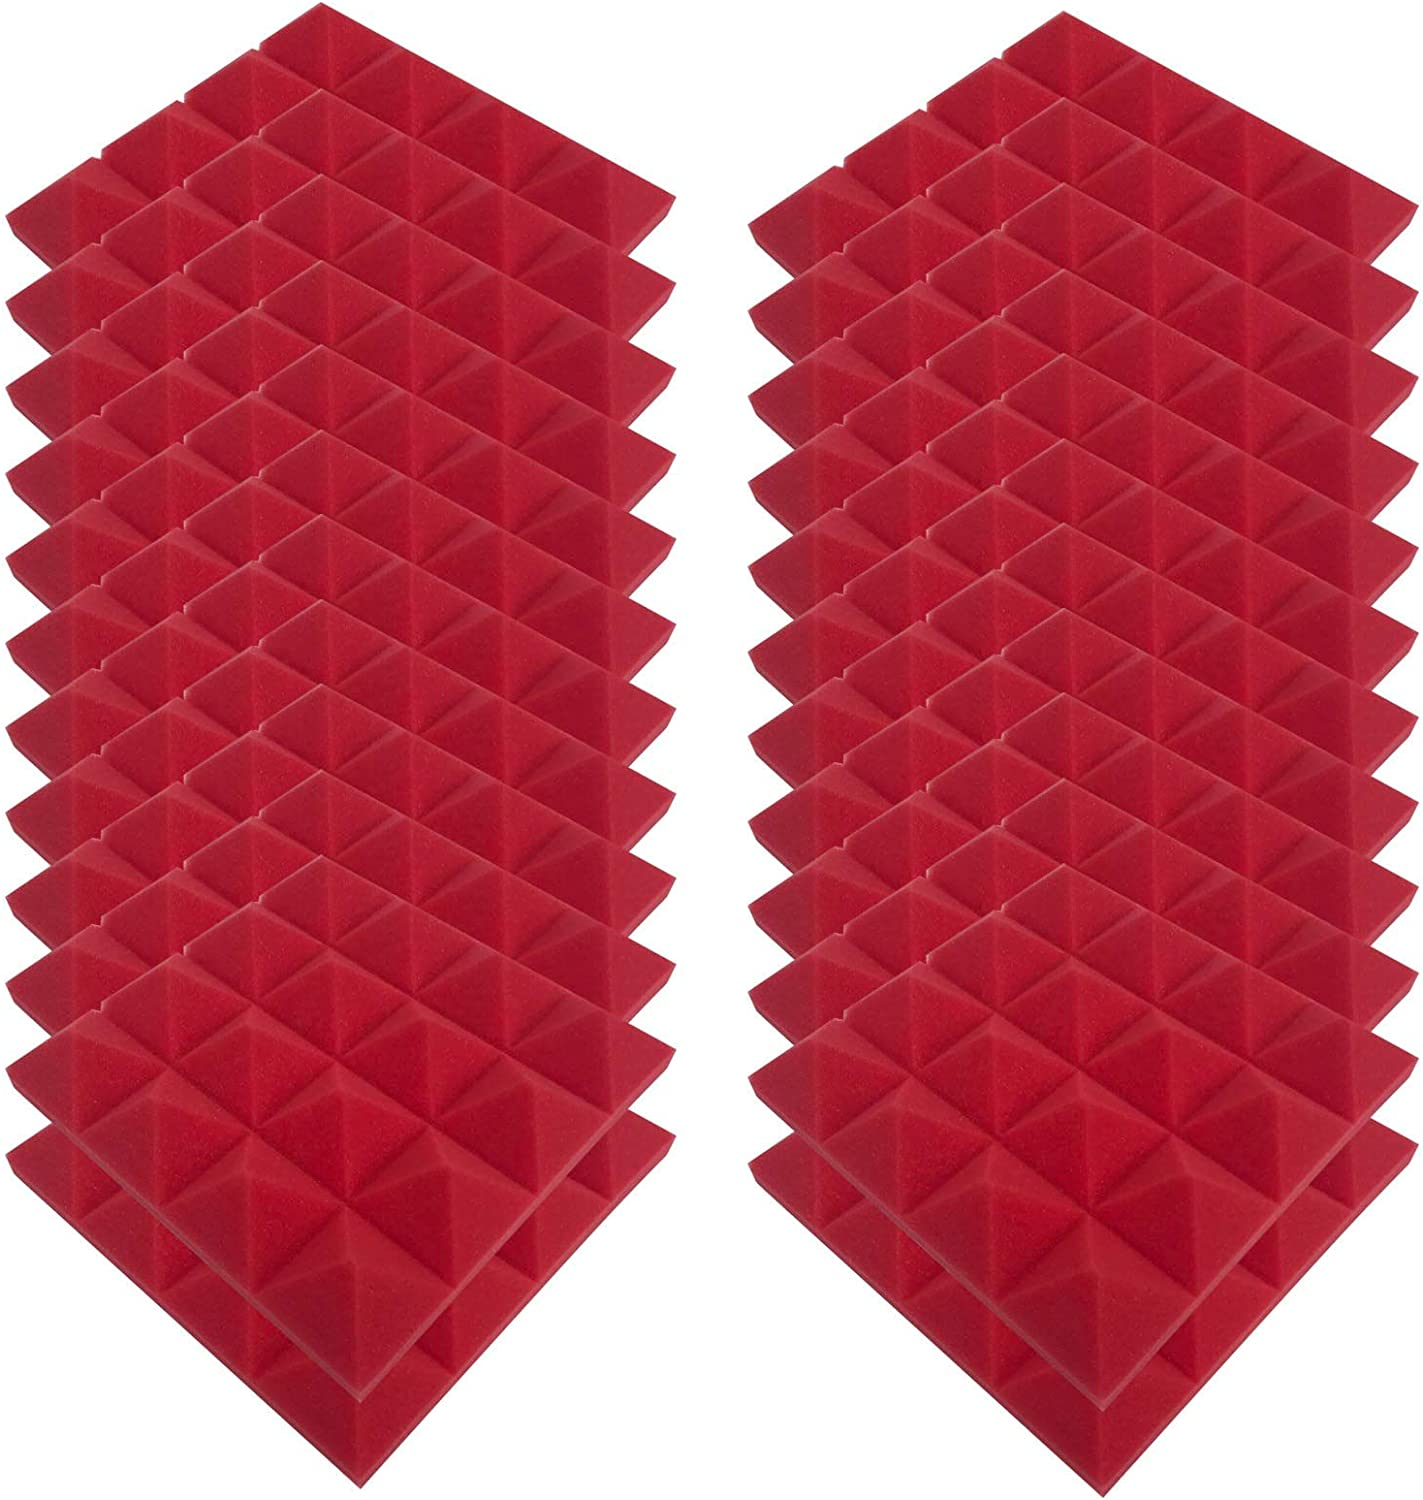 Matasleno black and red sound acoustic Nippon regular agency panels proof sold out foam foam's